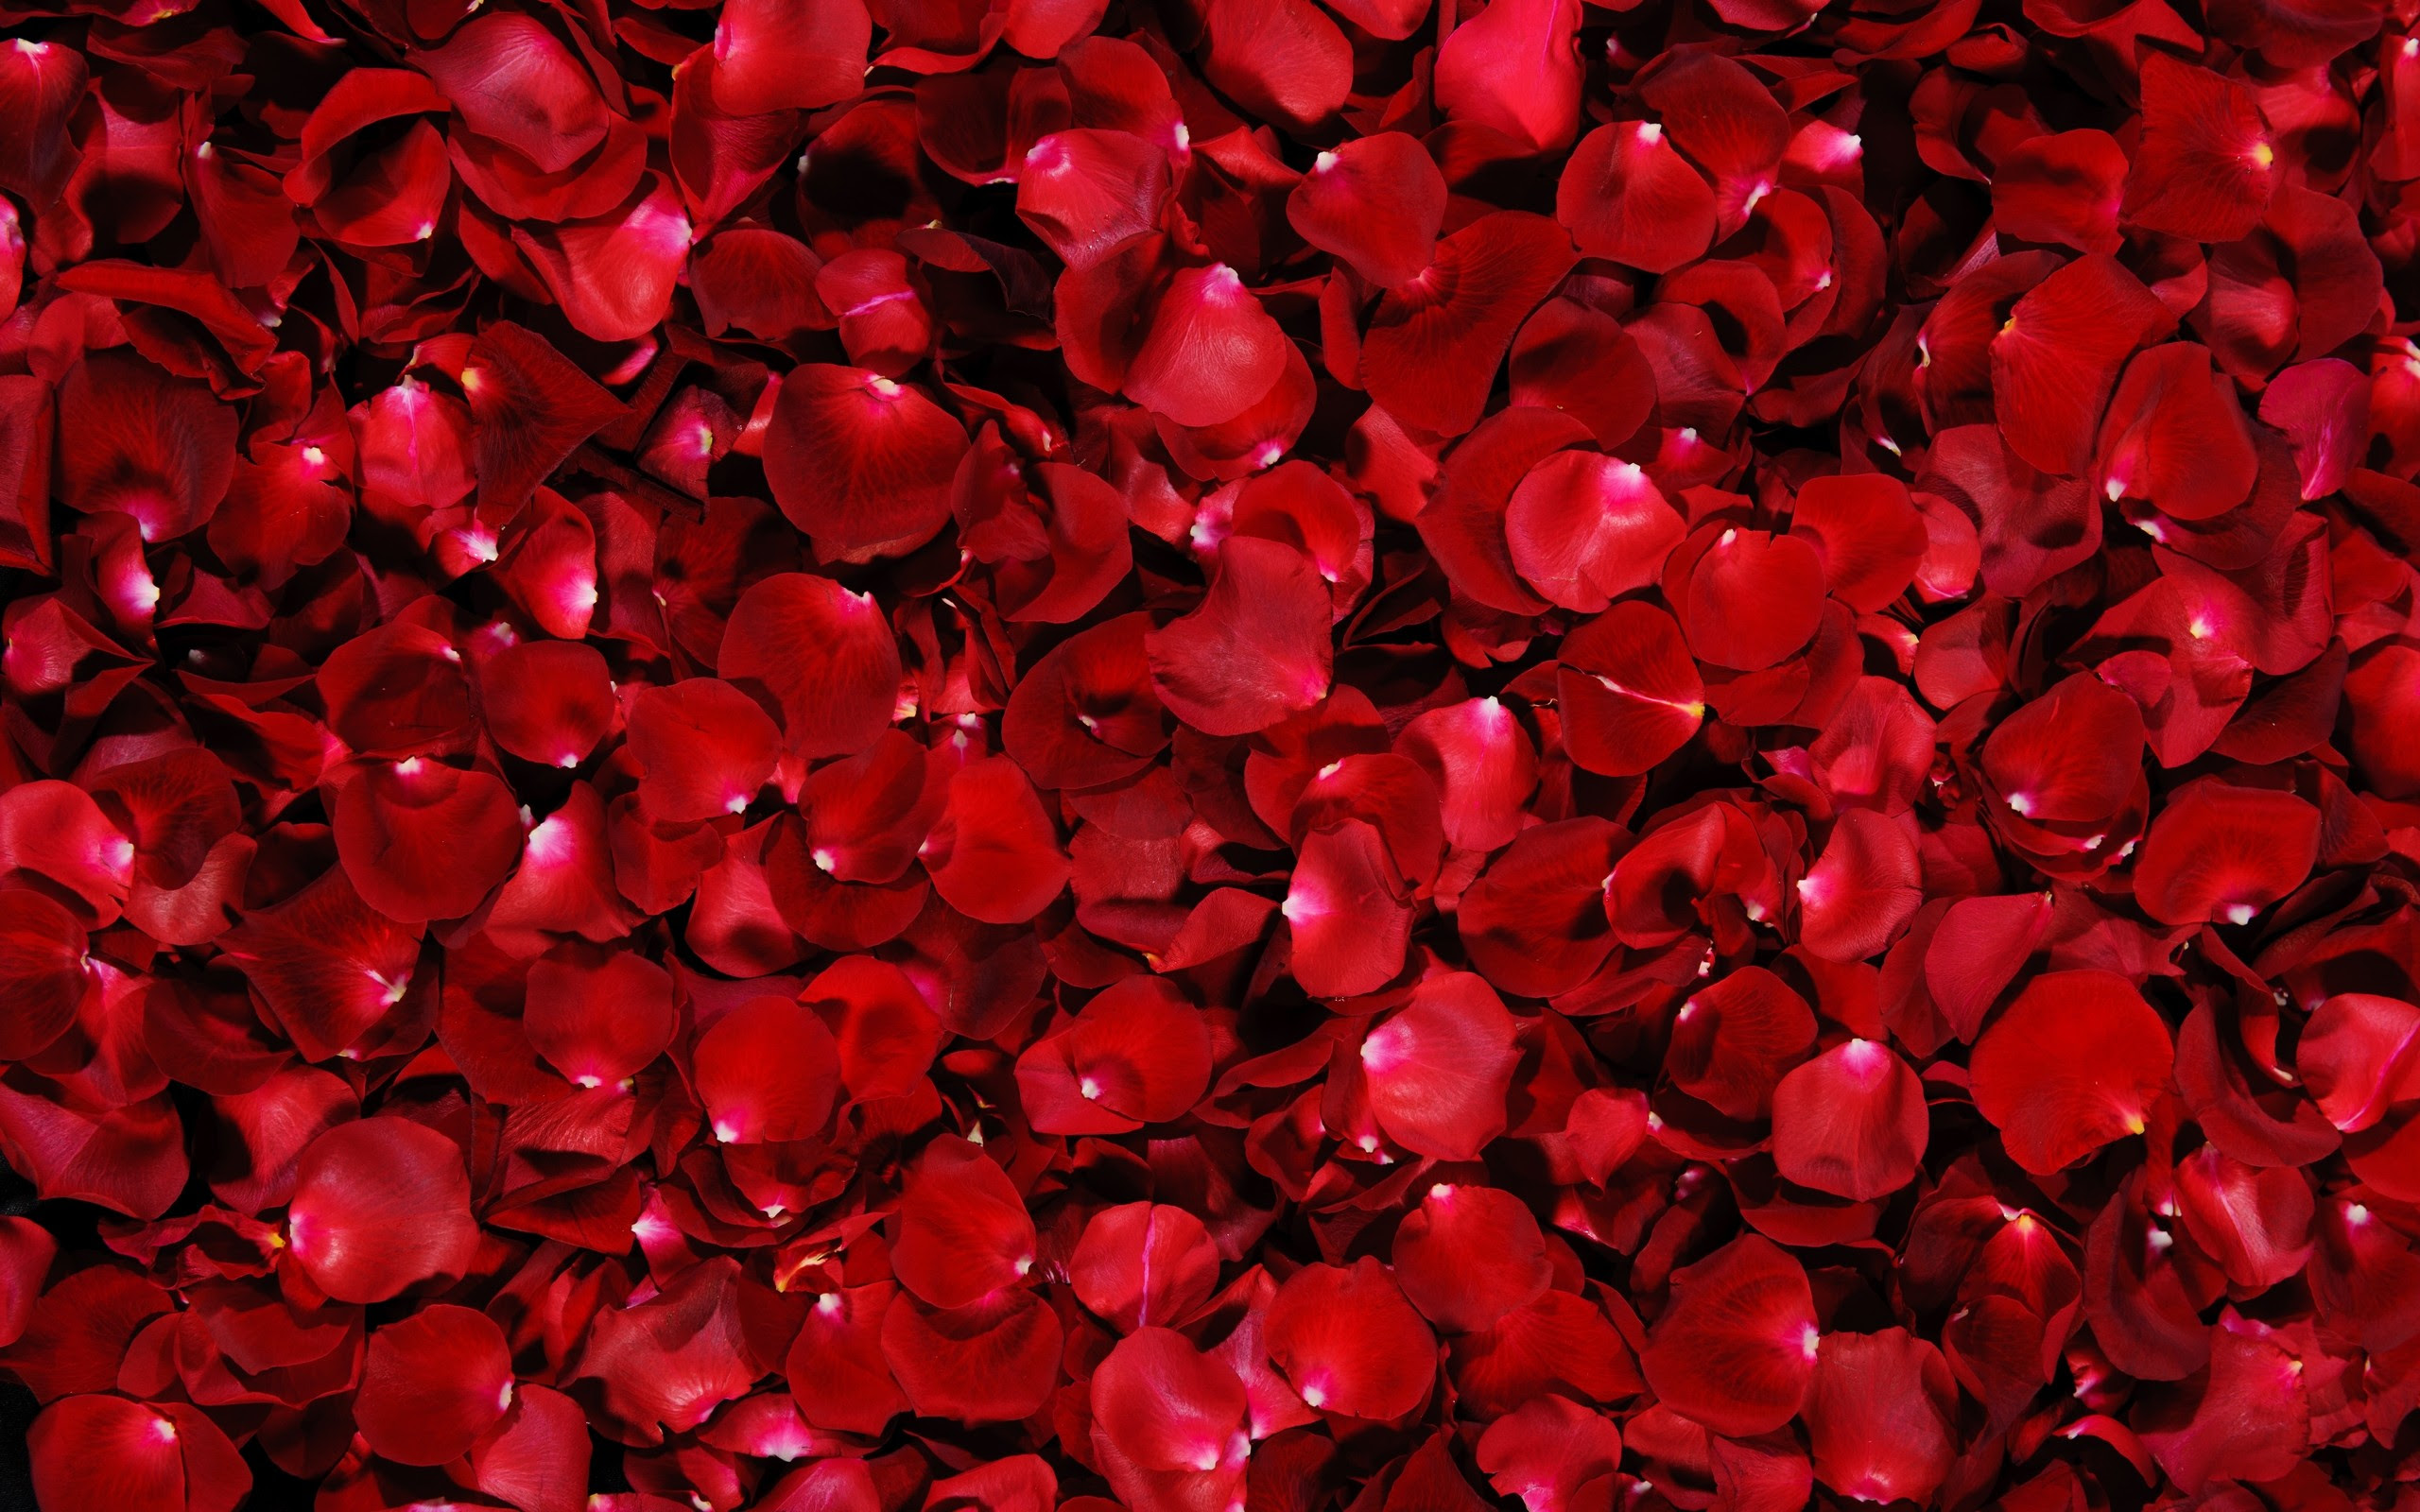 50 Beautiful Red Rose Images To Download